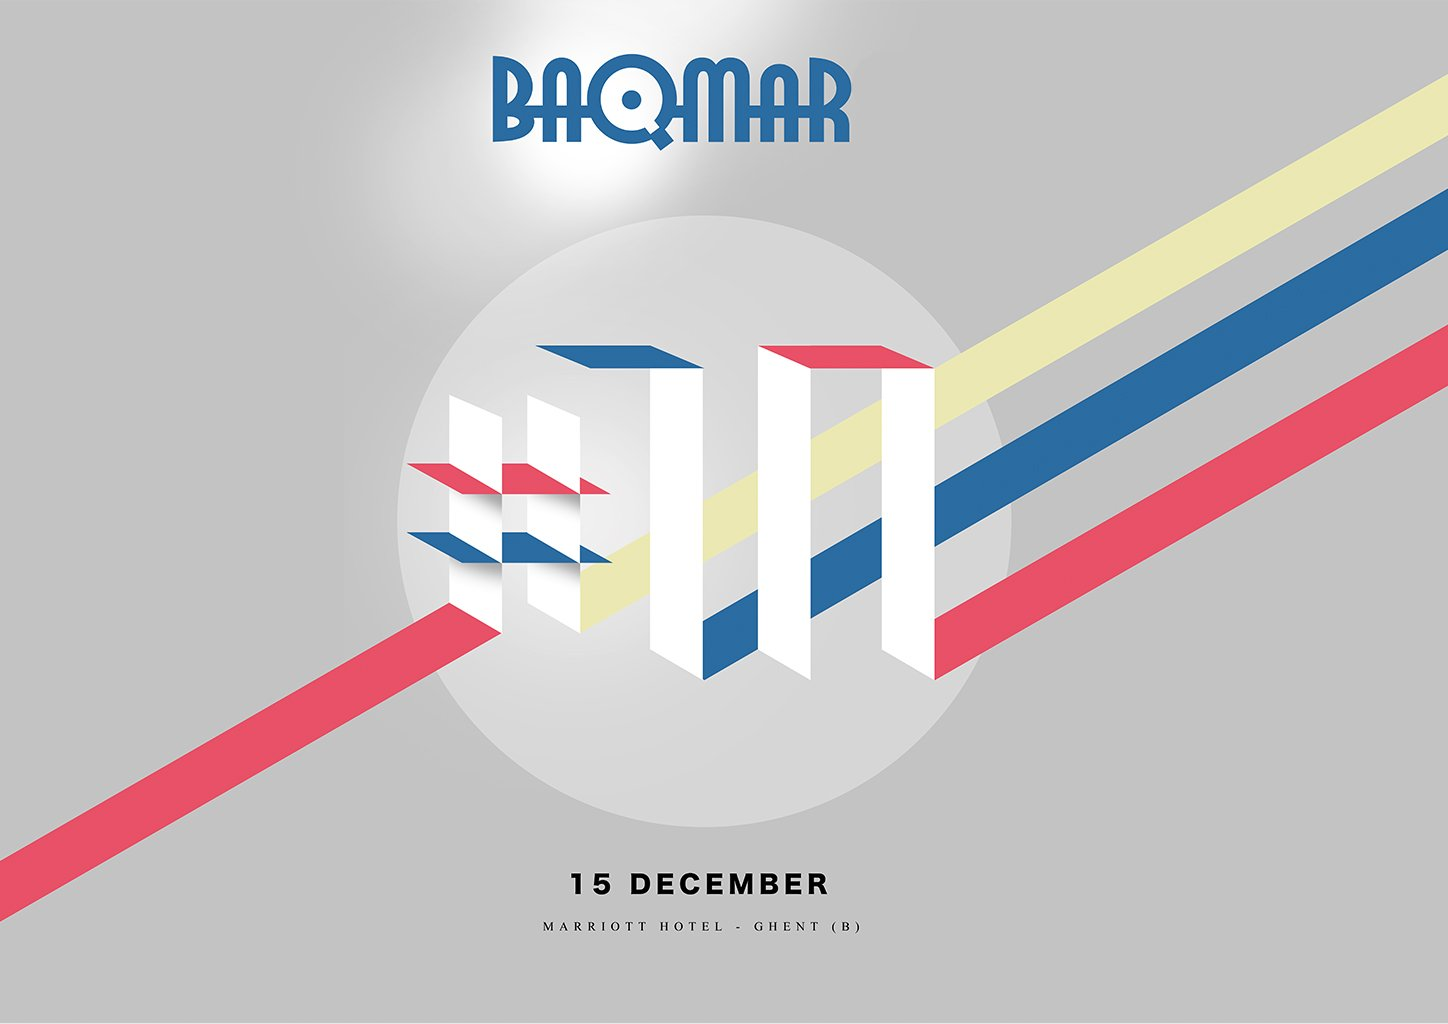 Baqmar Events